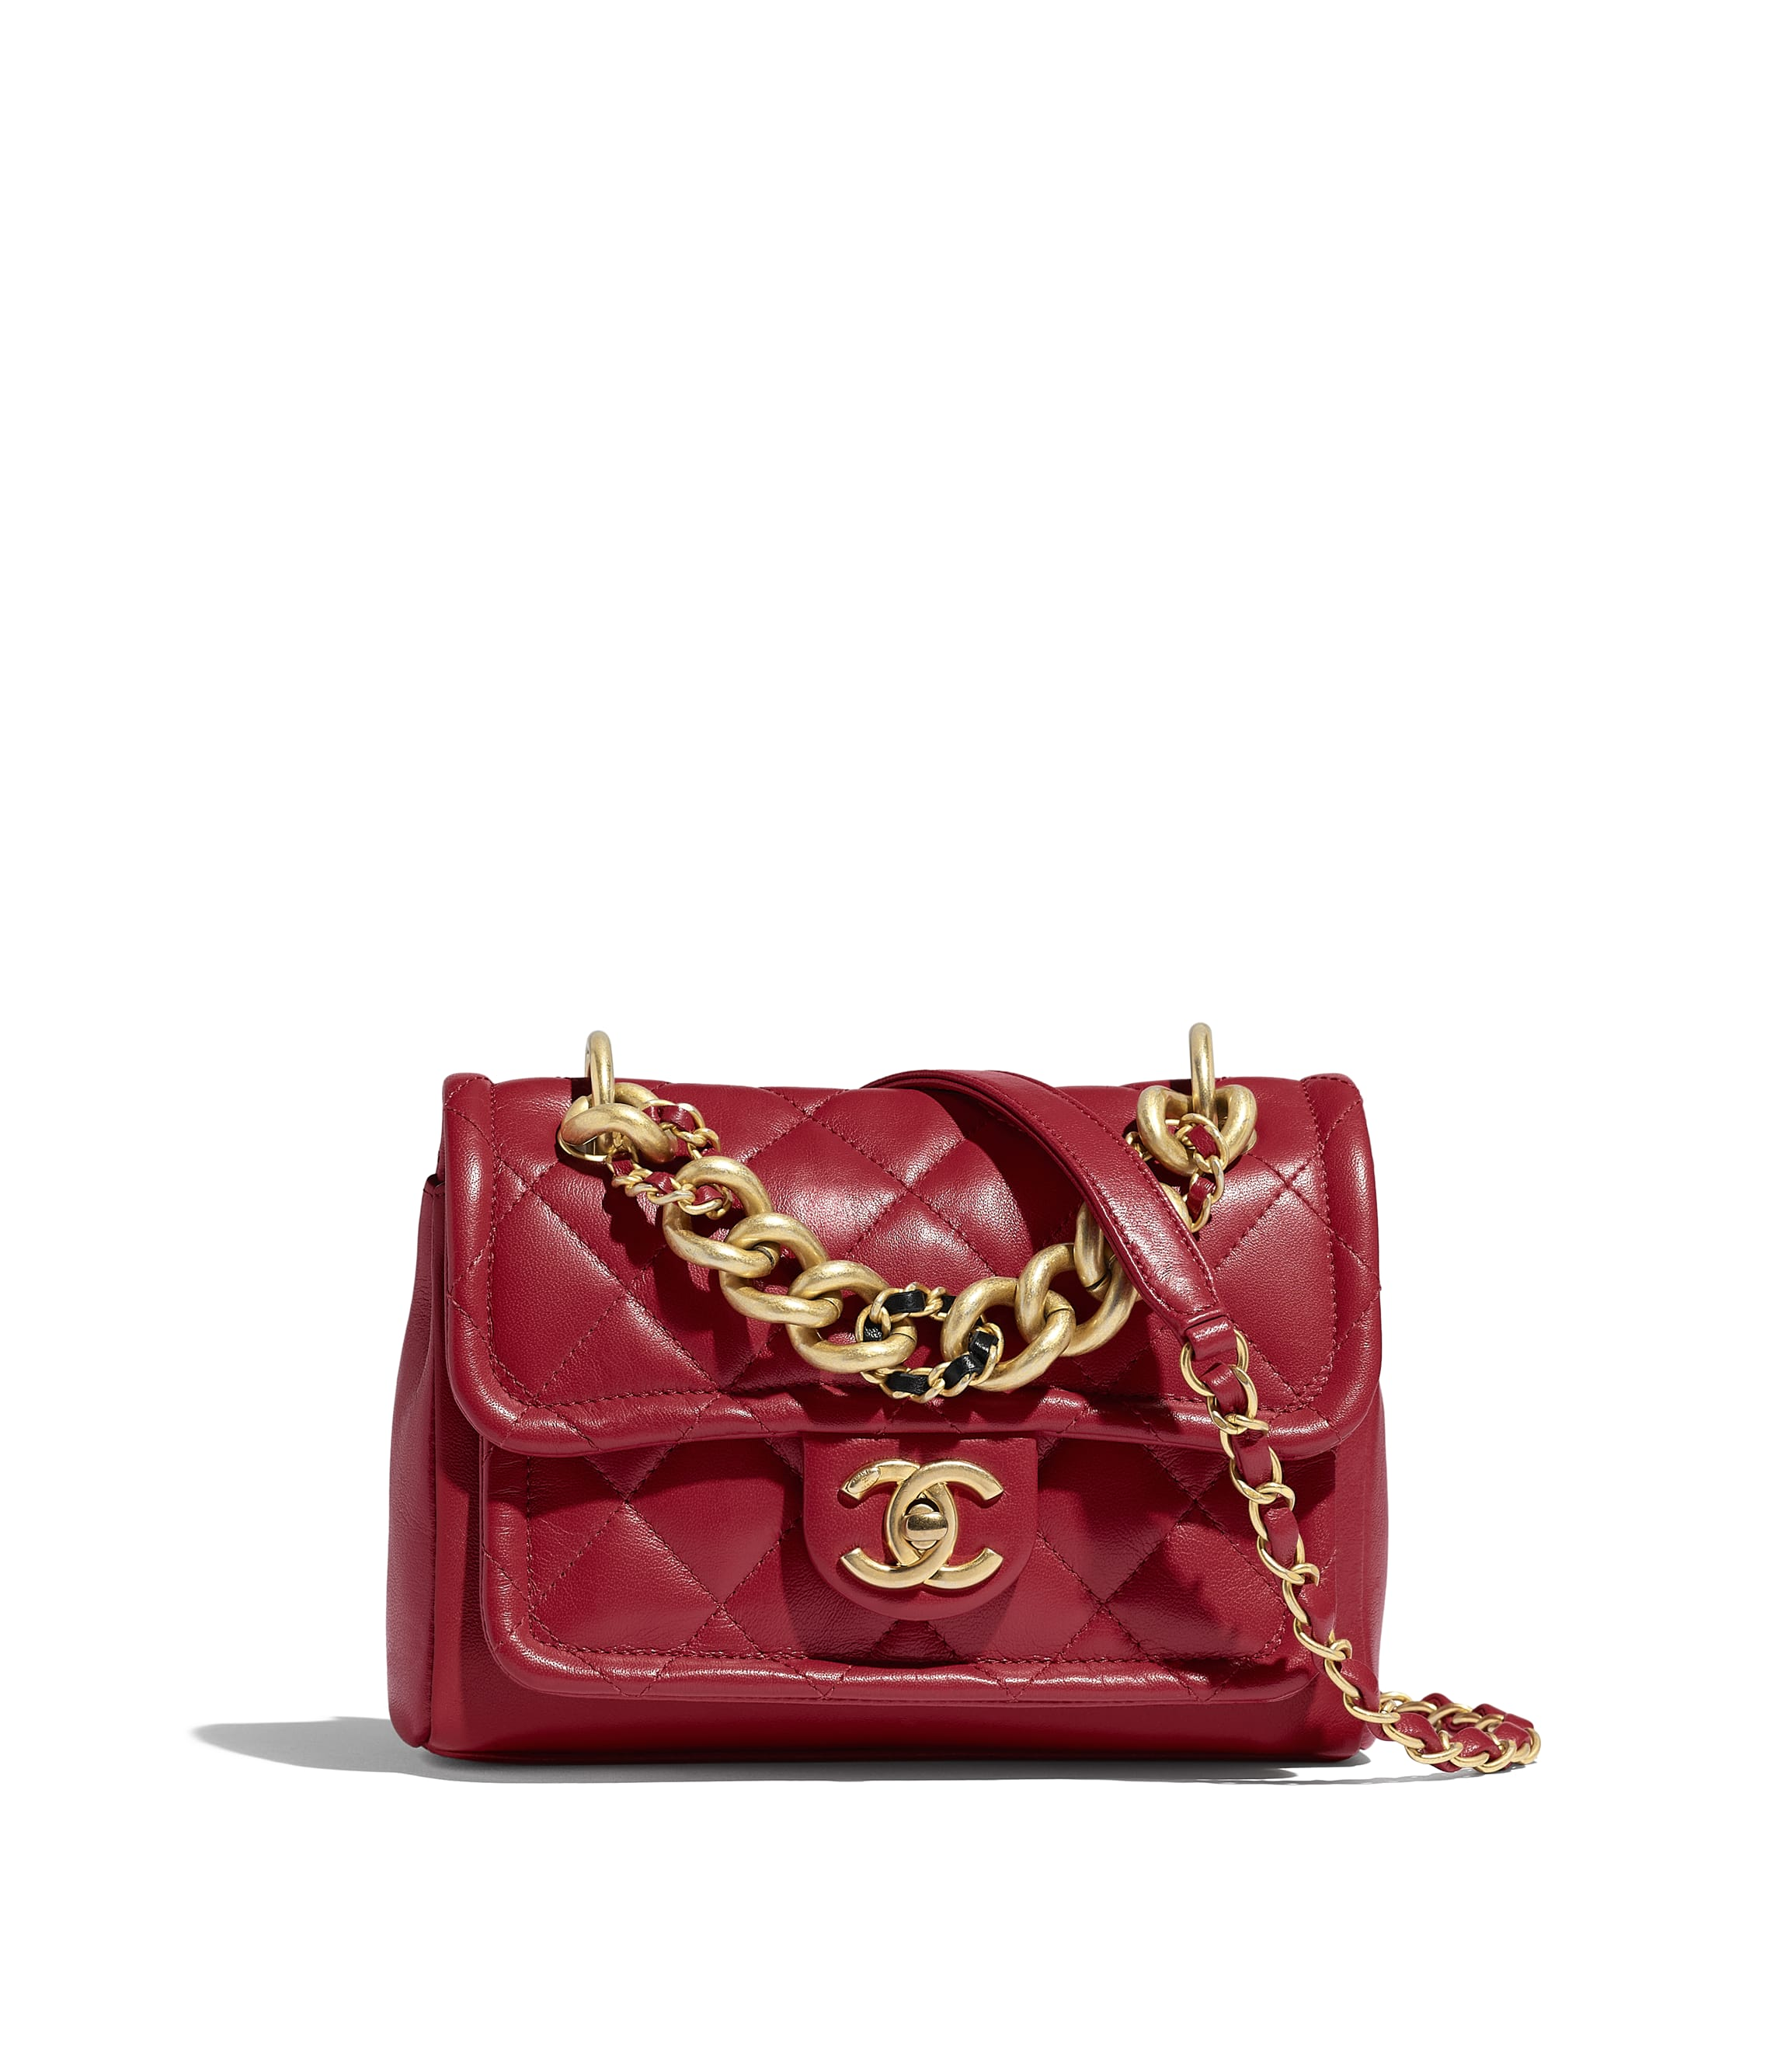 14ccf0f7f40e4 New This Season - Handbags - CHANEL